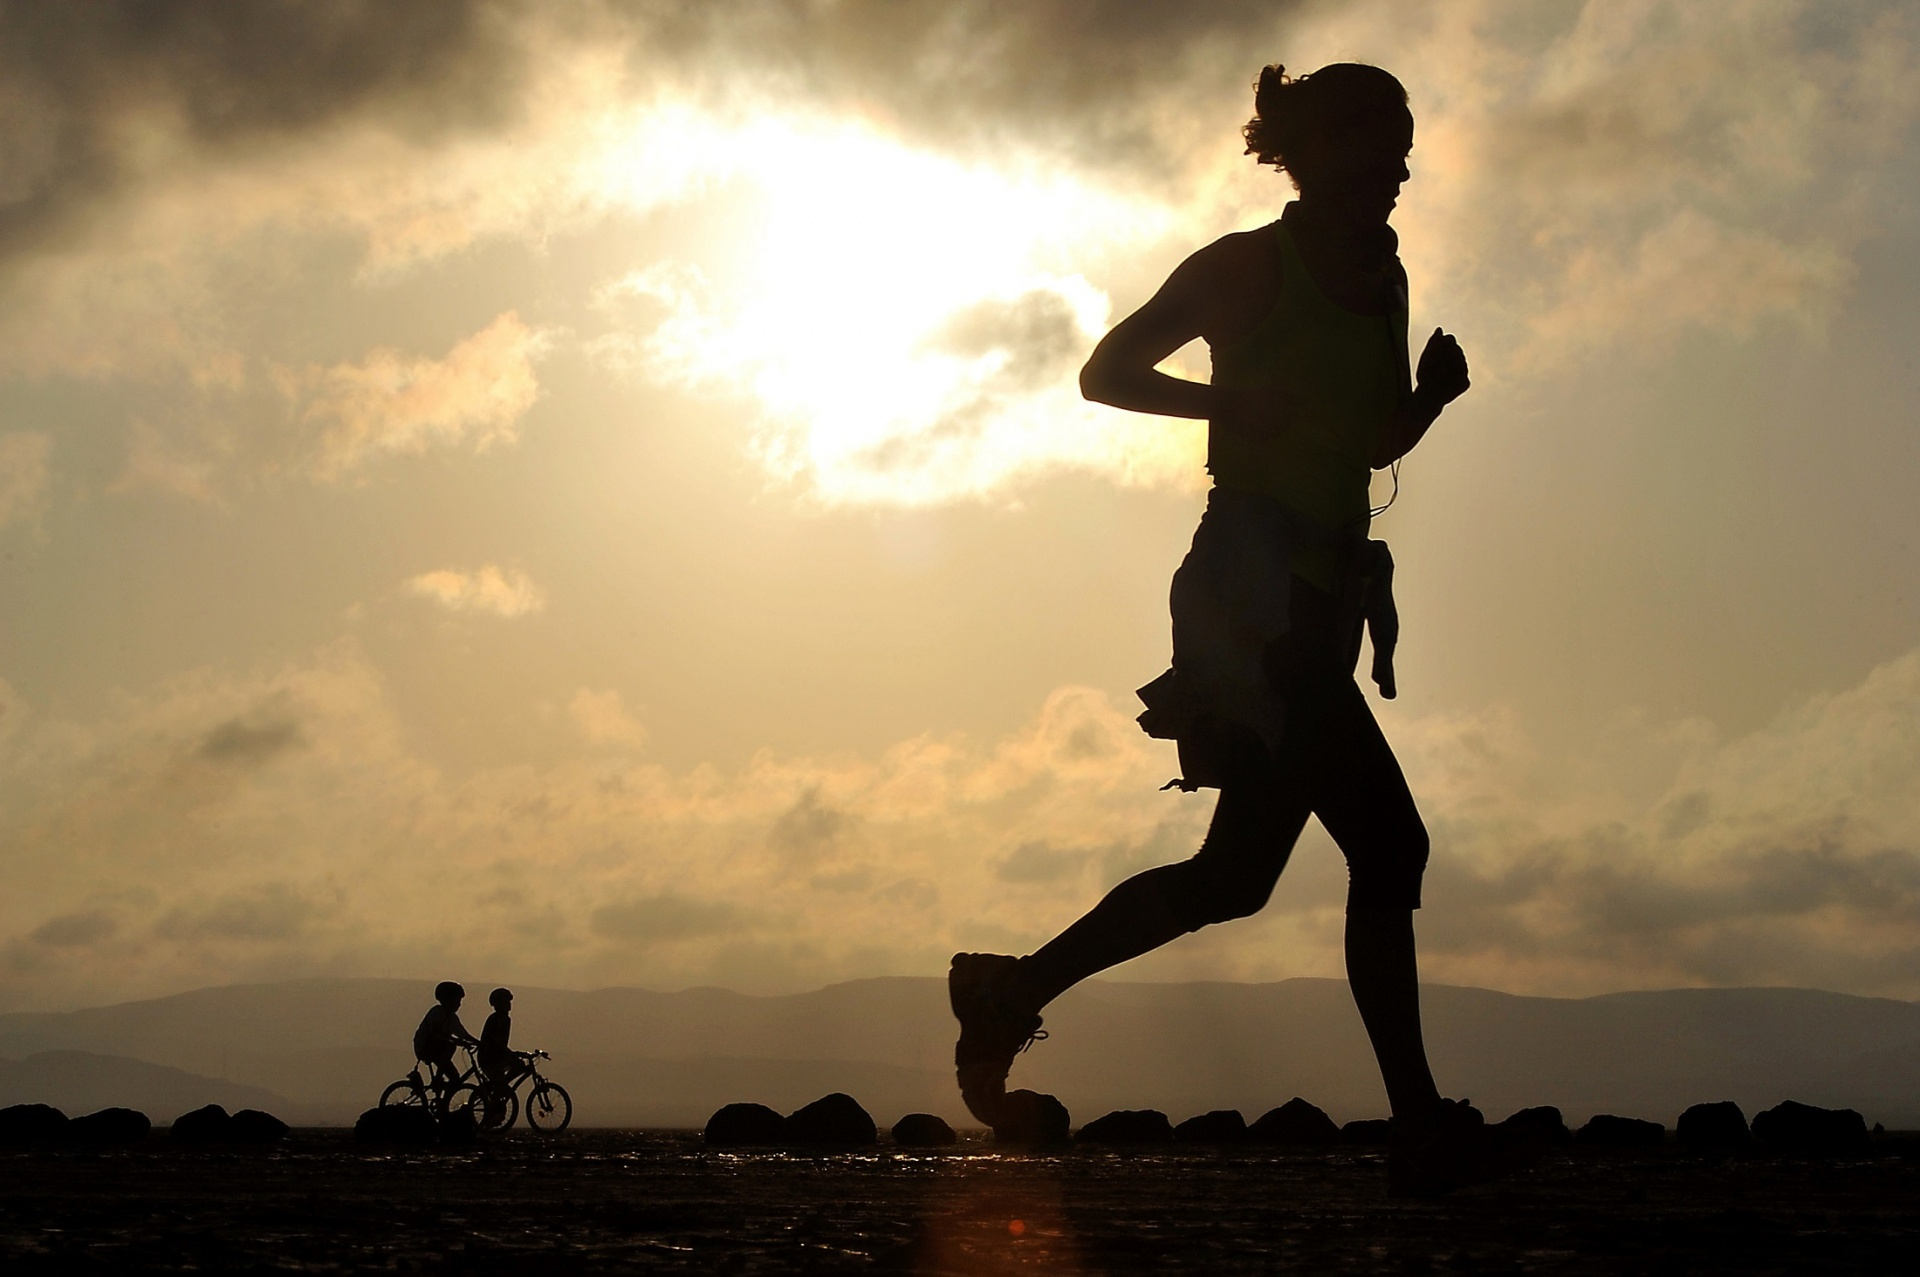 runner-silhouette-15524324080mM